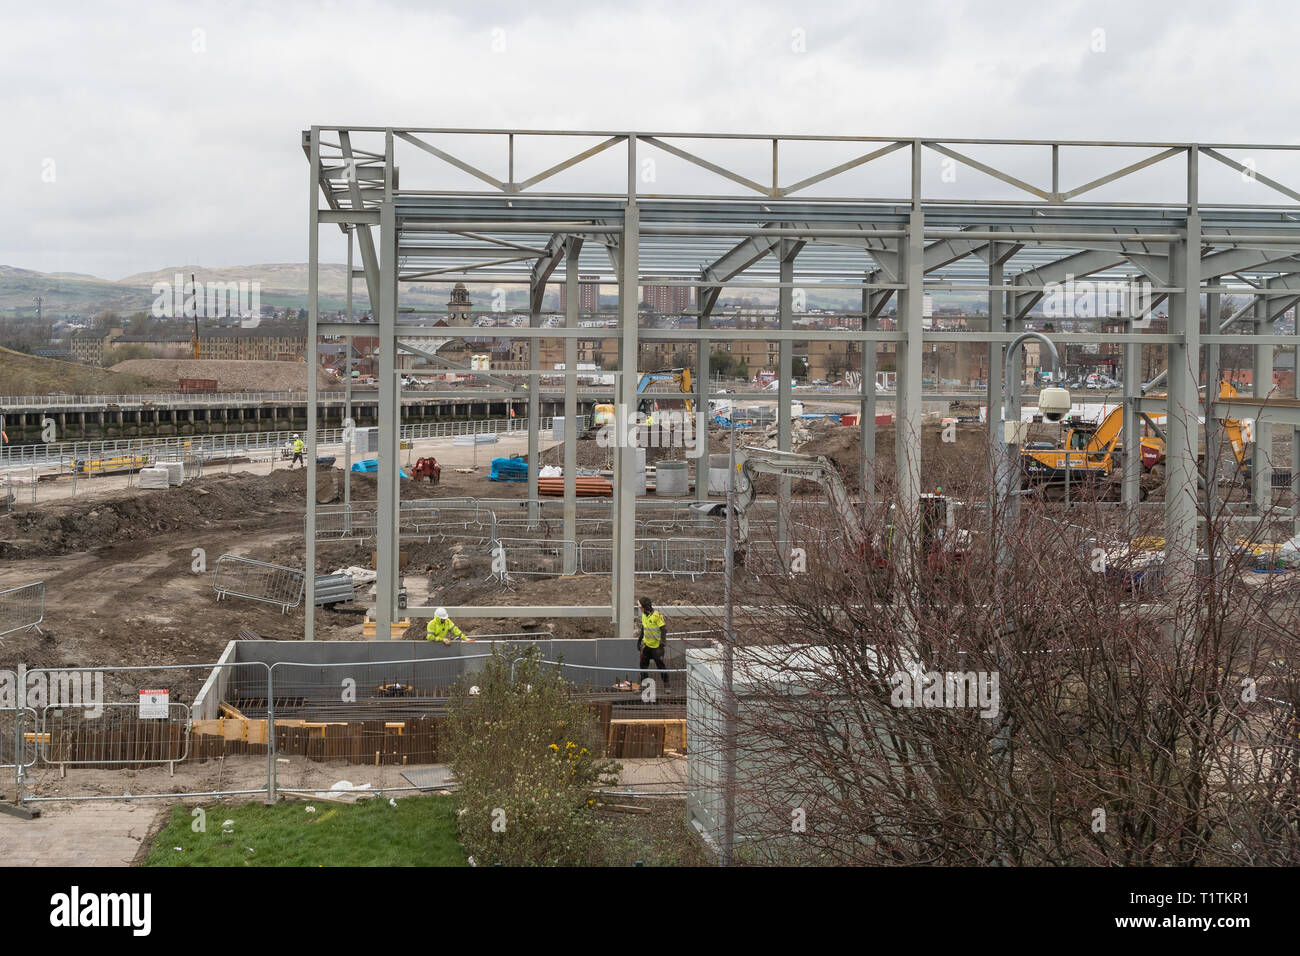 Clydebank energy centre construction at former John Brown's shipyard site, Queen's Quay, Clydebank, Glasgow, Scotland, UK Stock Photo